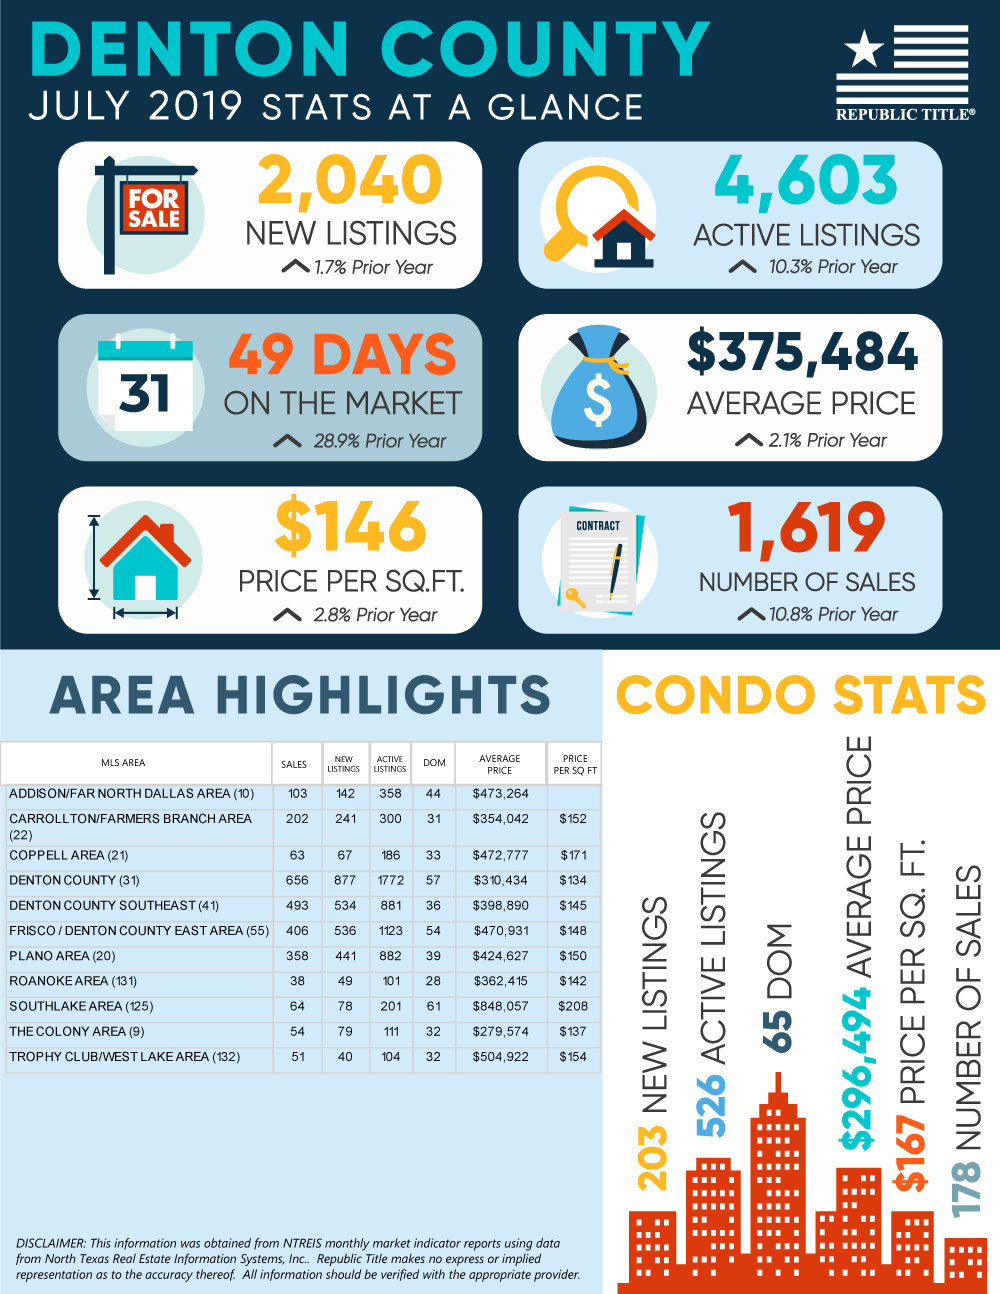 Denton County, TX Housing Market Update:  July 2019 Home & Condo Stats